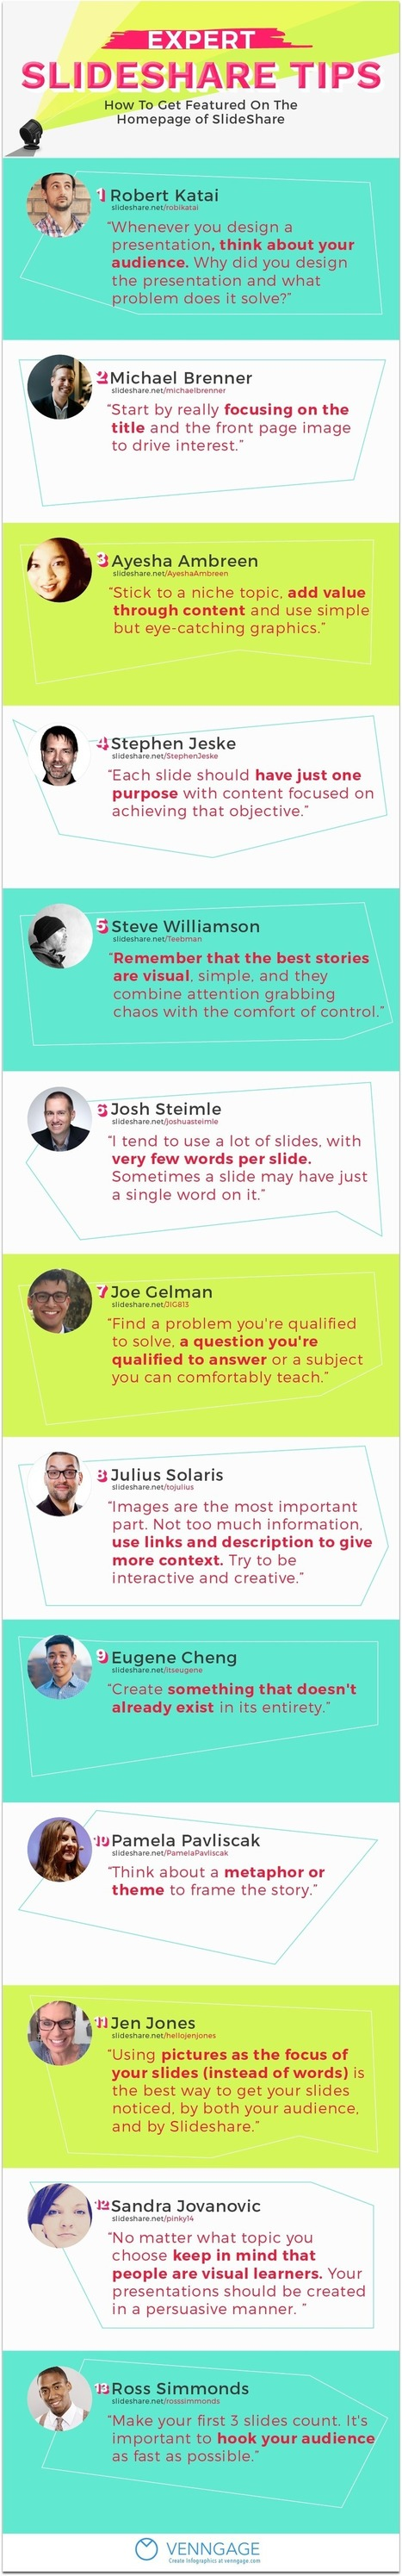 13 Tips to Get Your Presentation Featured on the Front Page of SlideShare [Infographic] | Ideias | Scoop.it